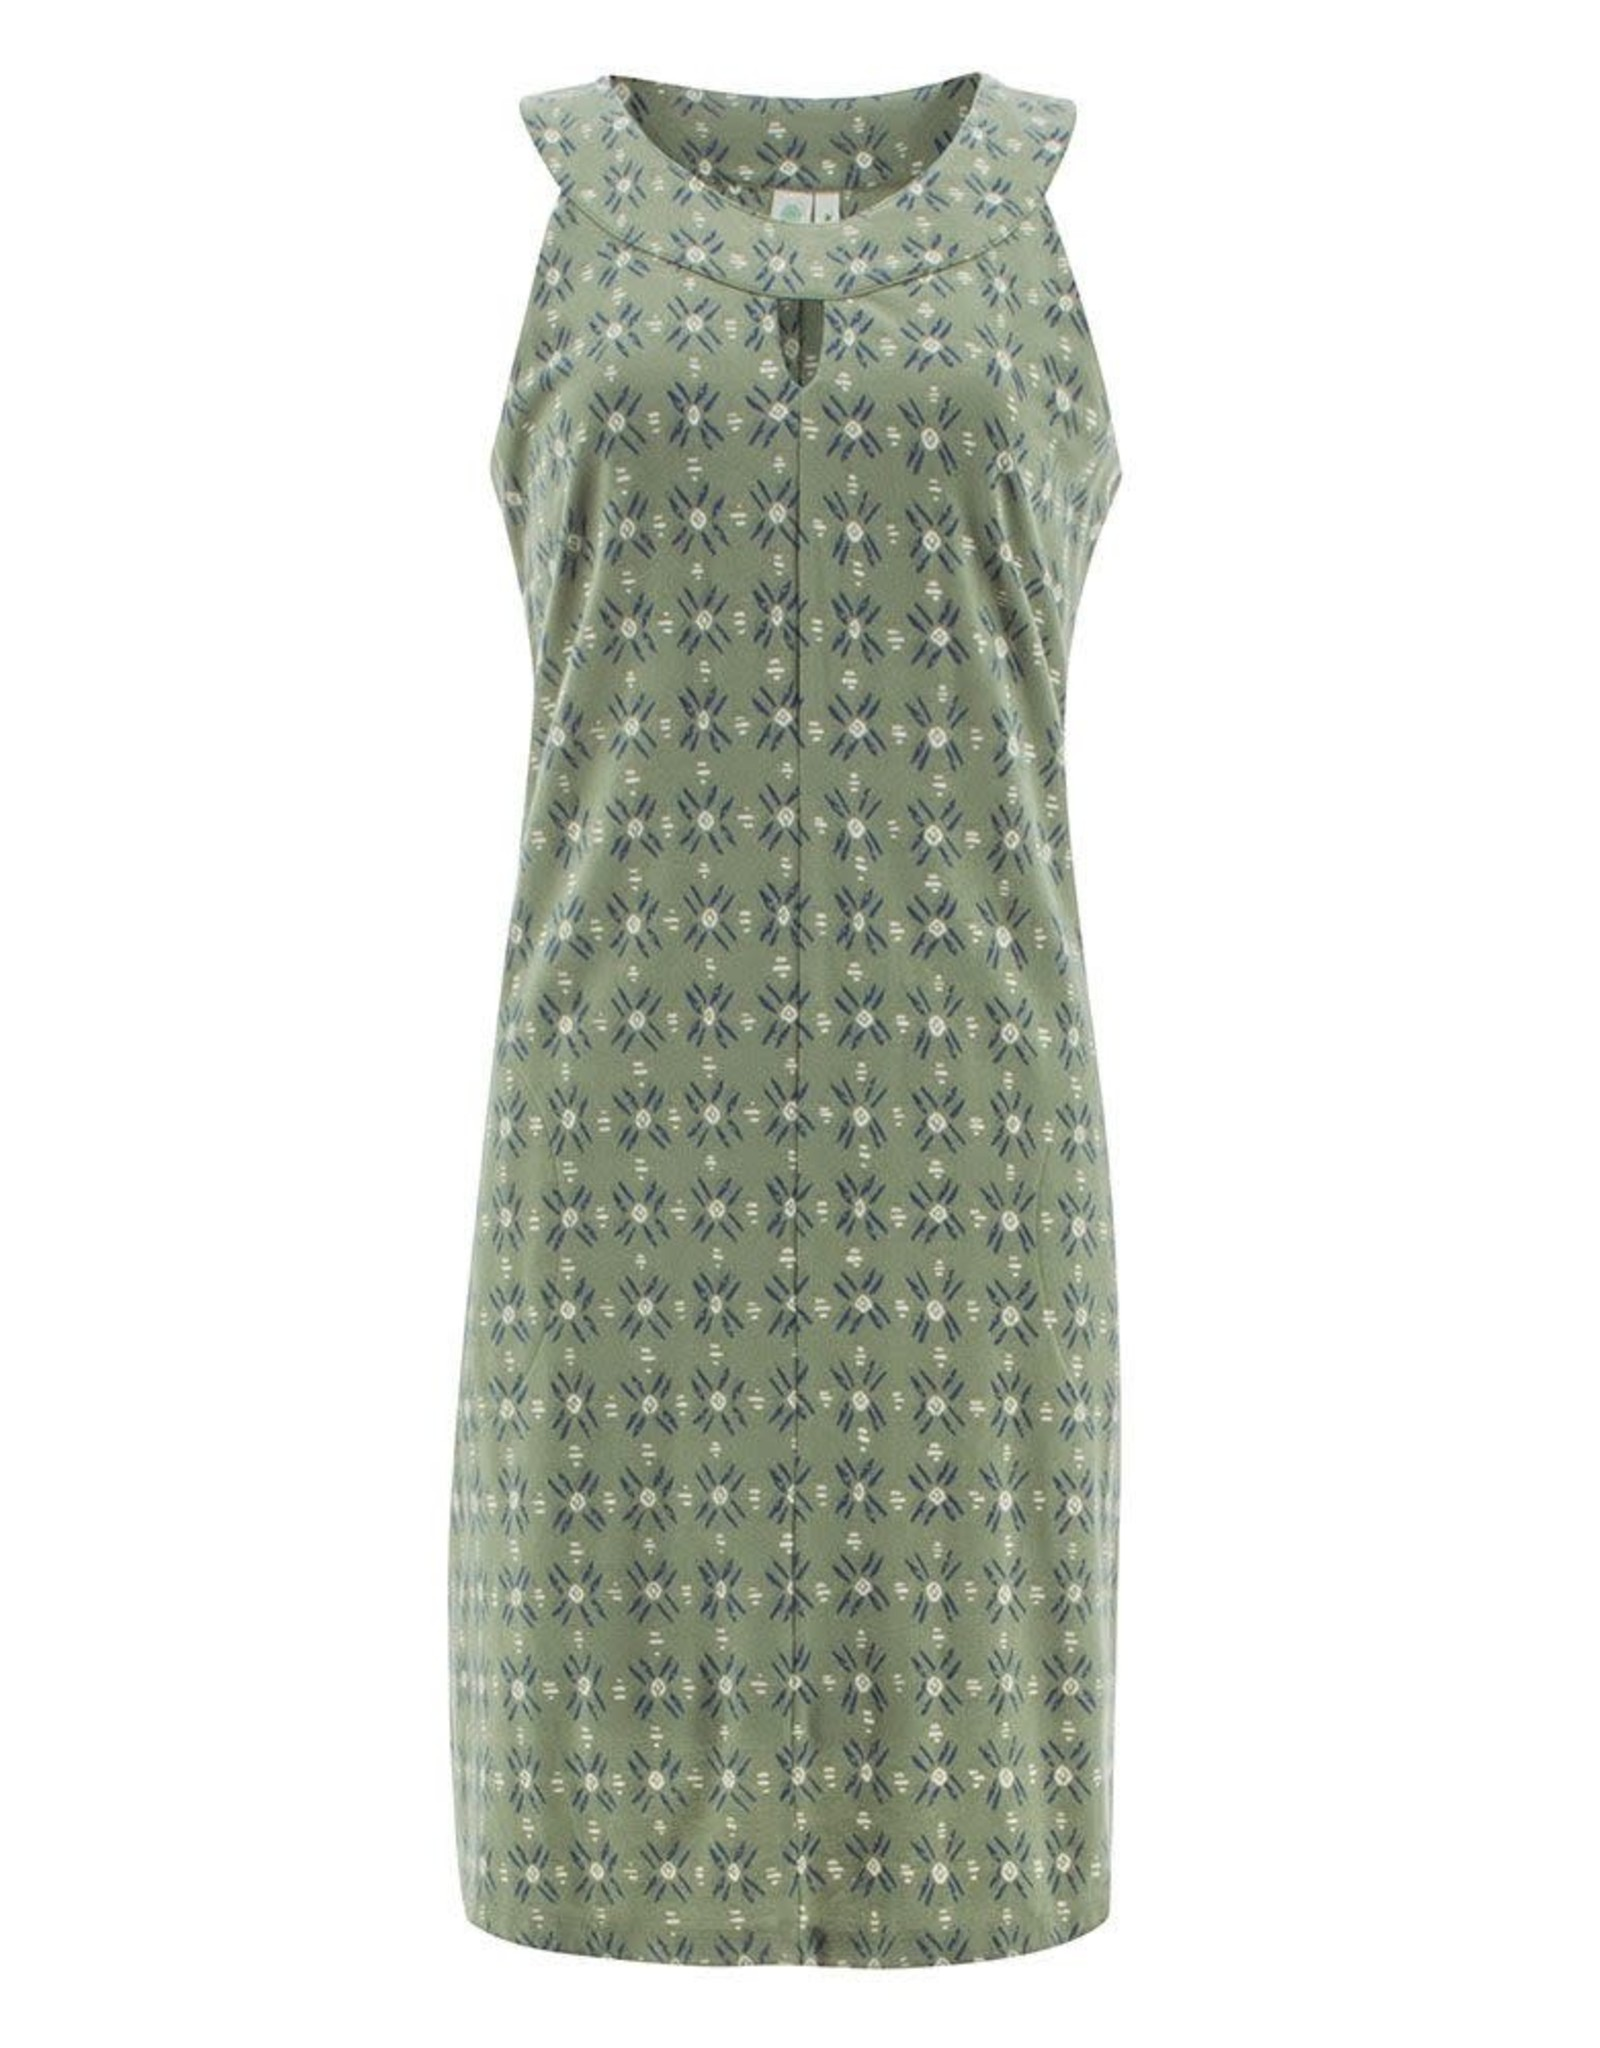 Aventura Green Print Keyhole Neckline Organic Cotton Tank Dress